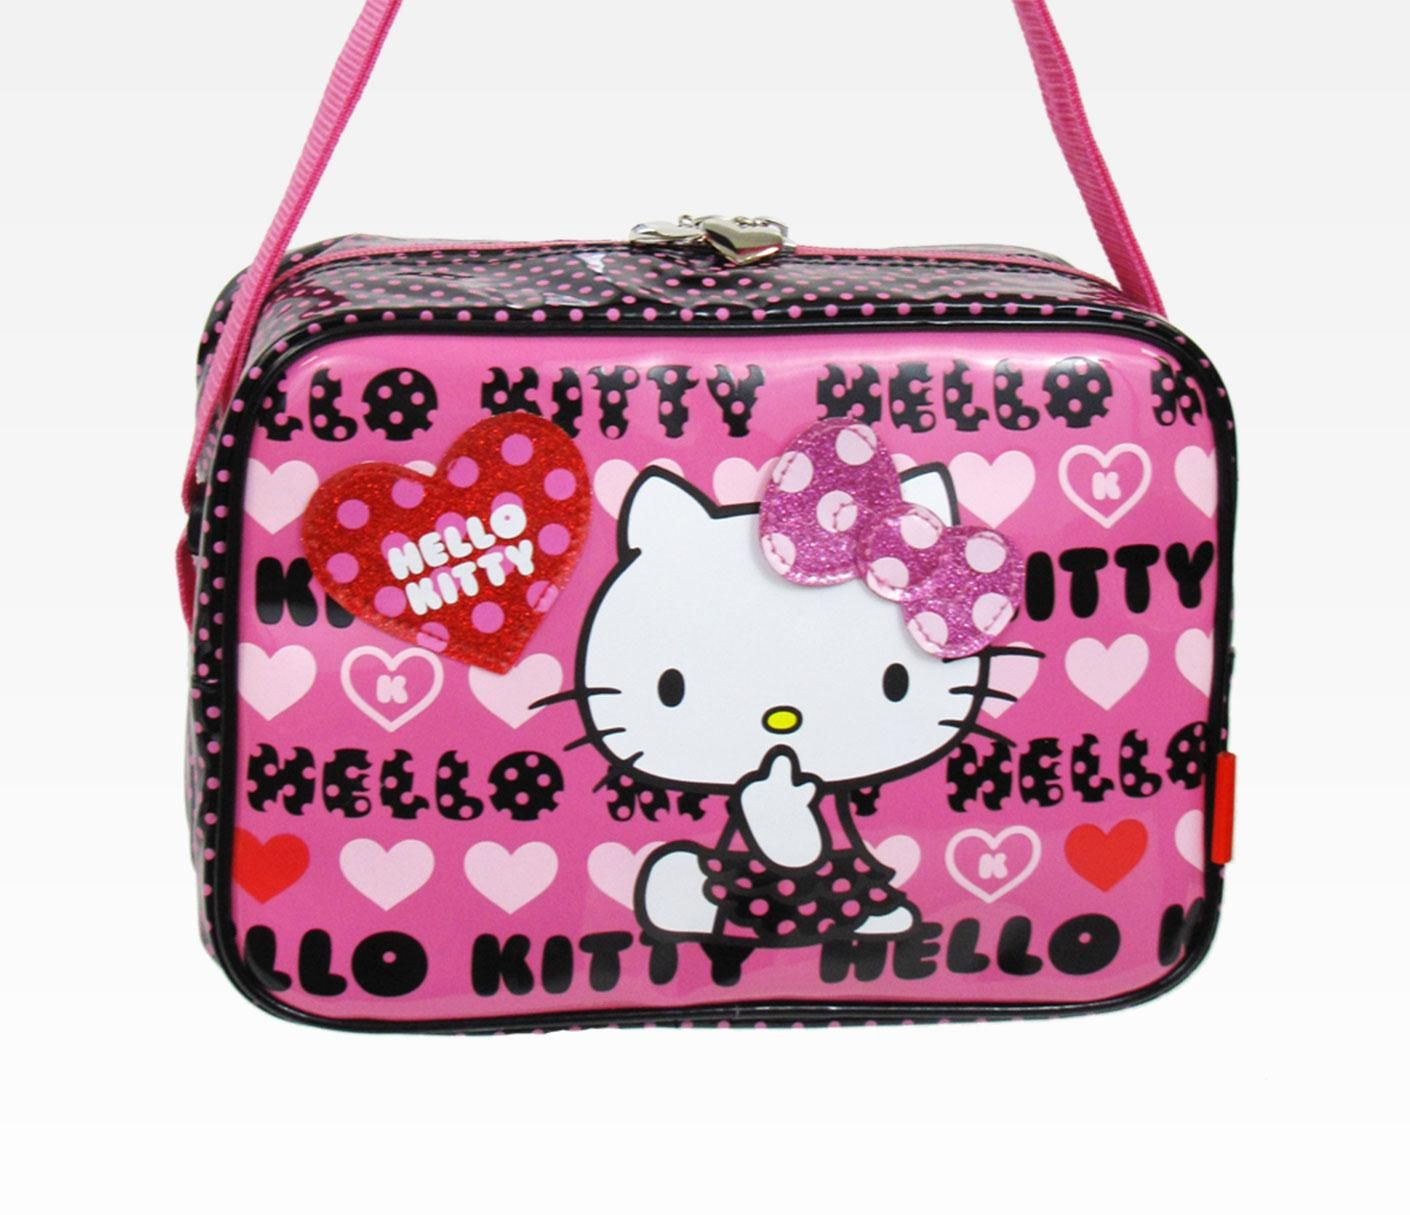 Hello Kitty Shoulder Bag Black Dot Heart